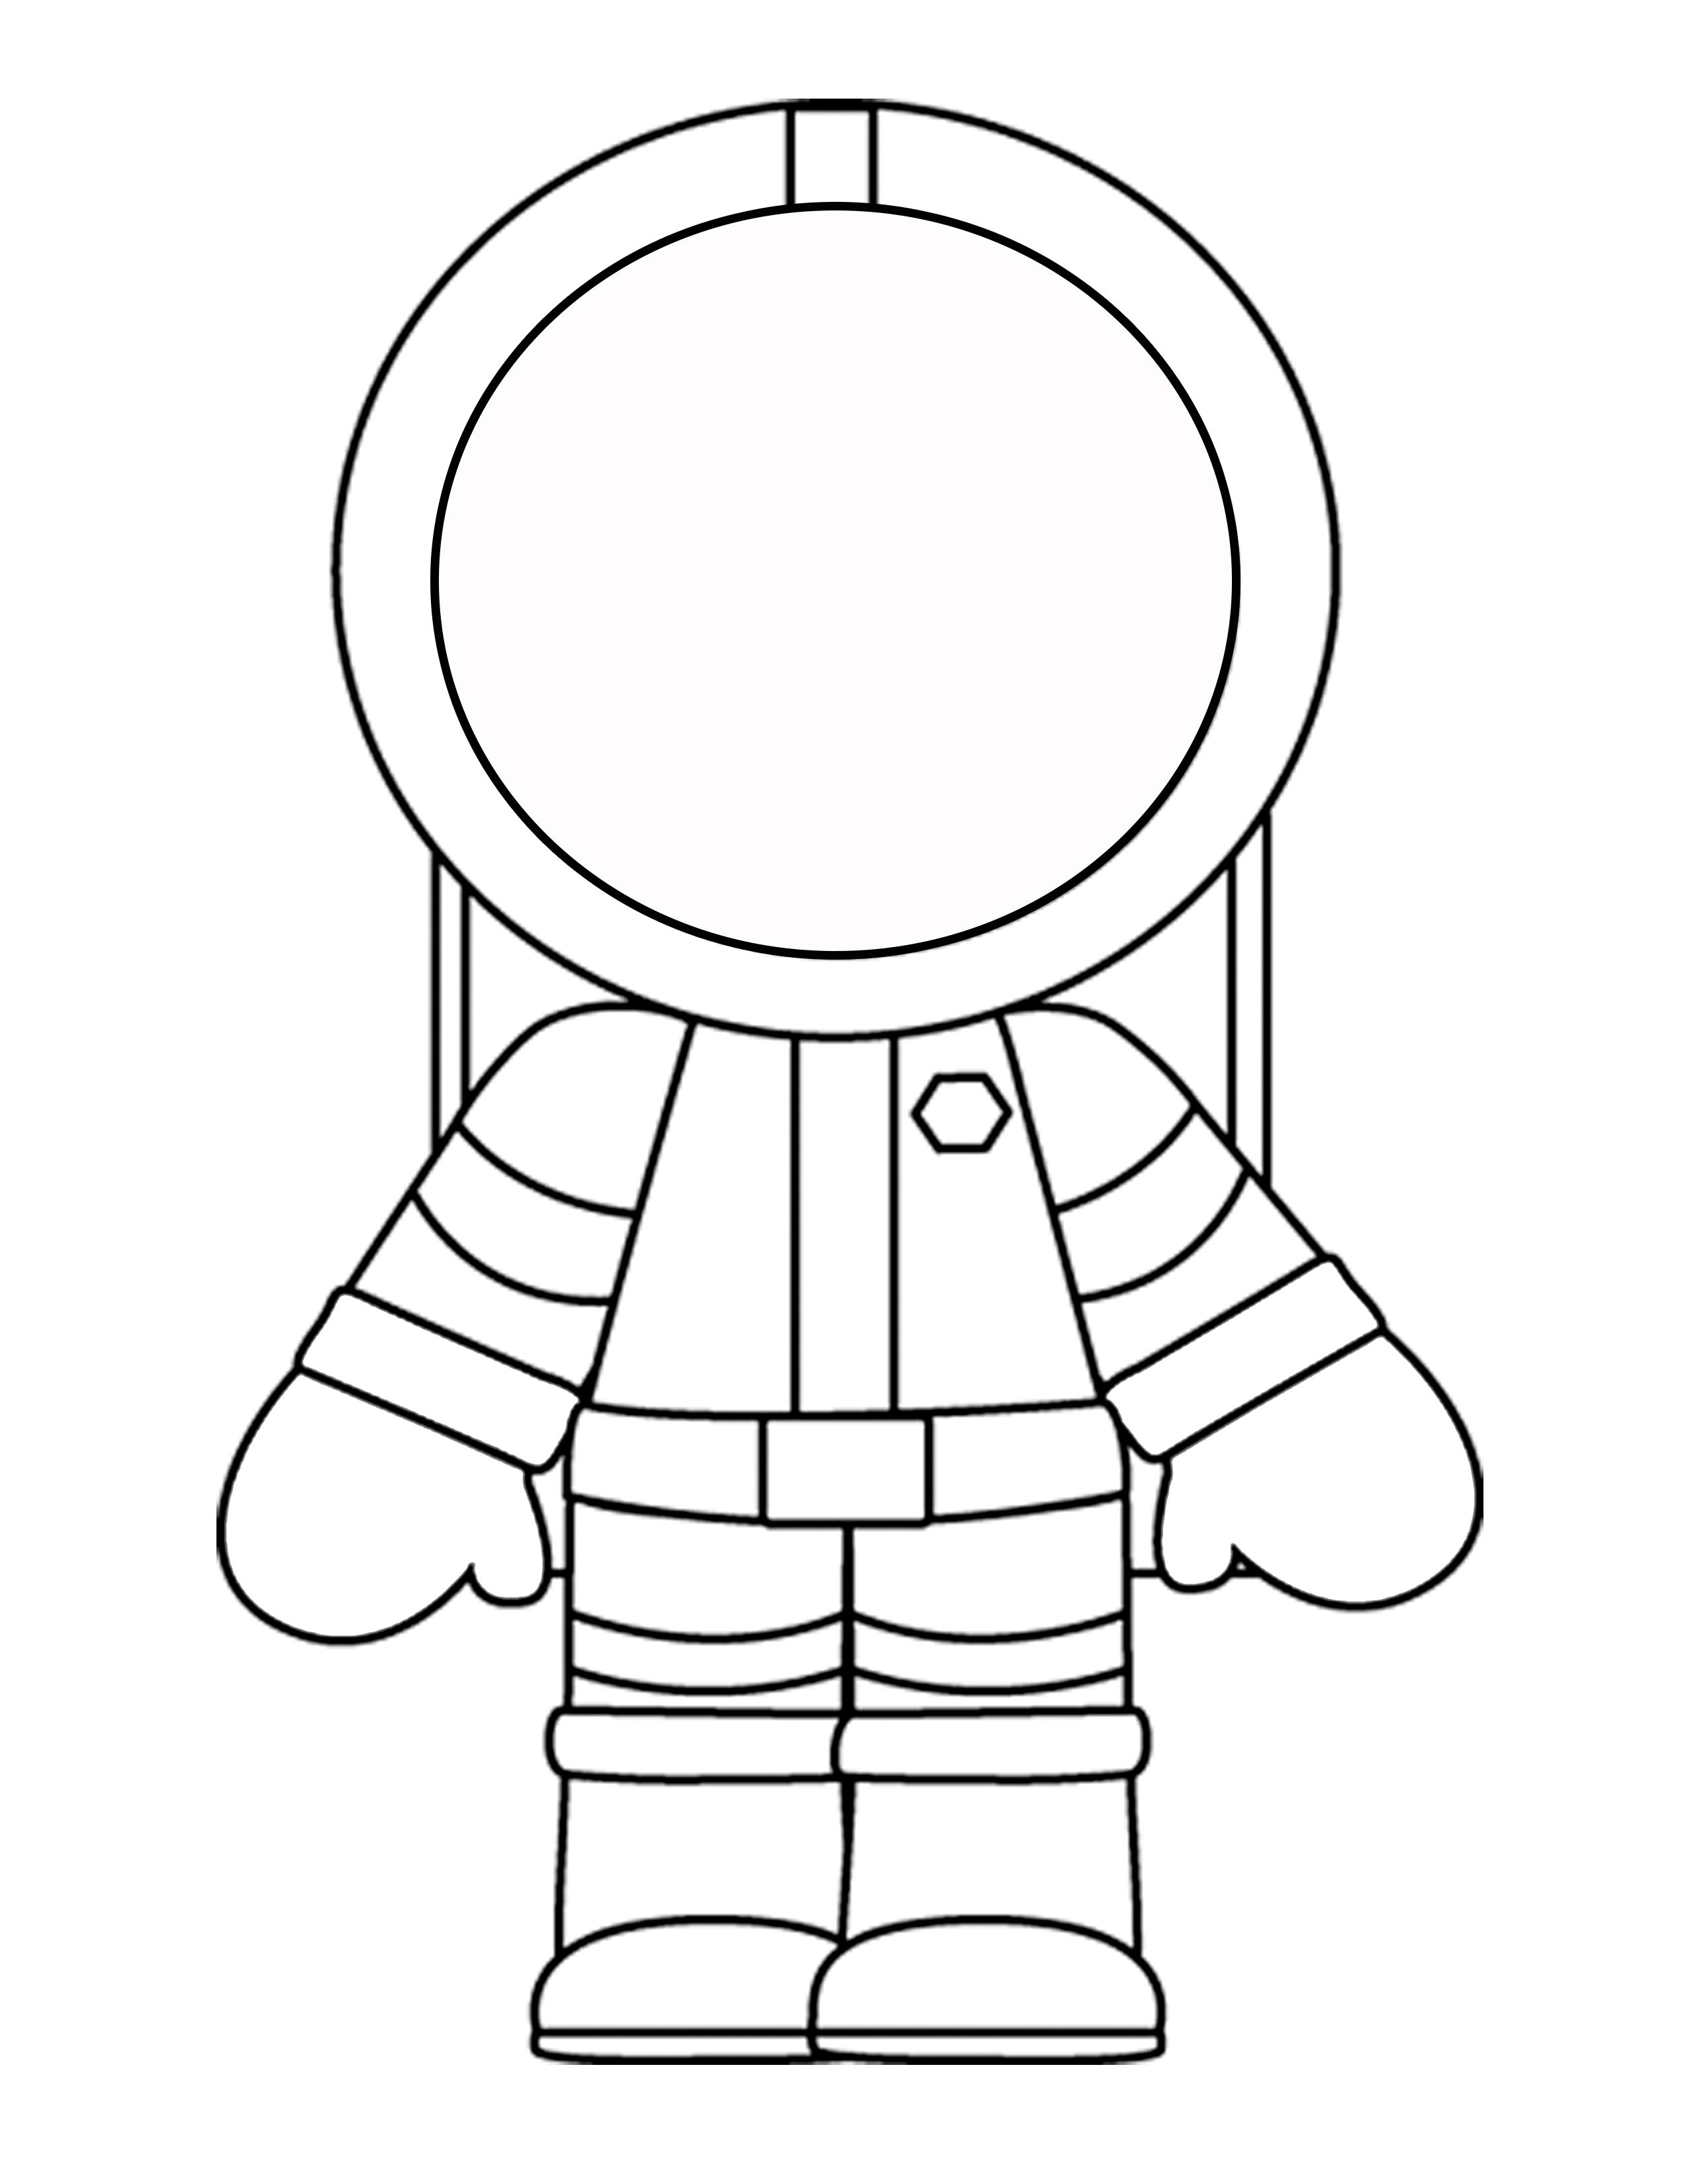 2550x3300 Printable Template For The Astronaut Mini Book Craft Vbs 2014